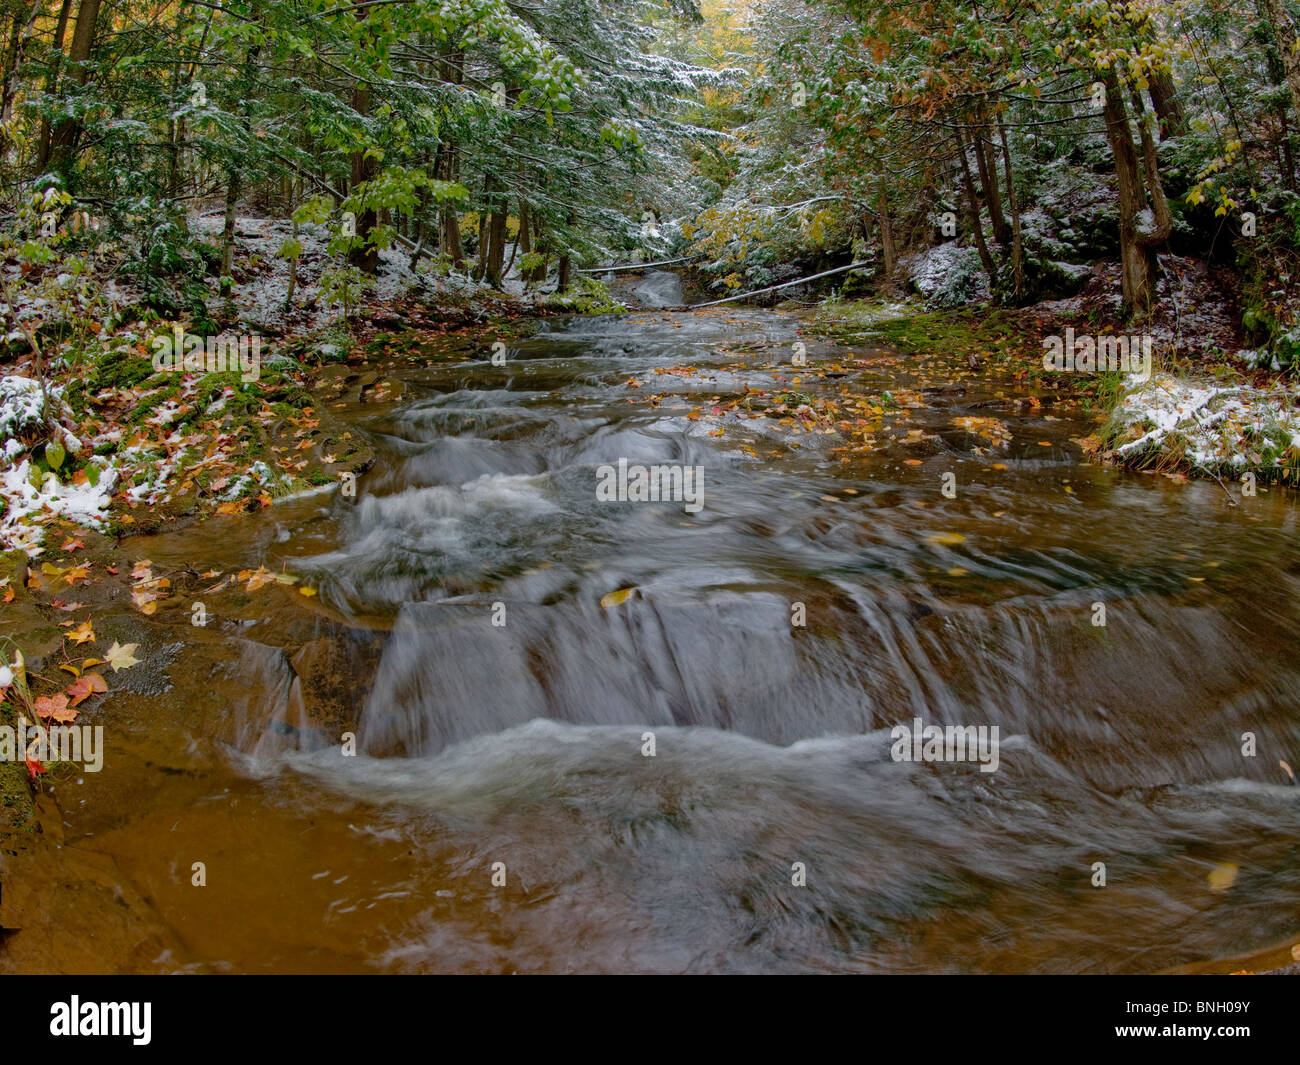 Stream flowing through a forest, Porcupine Mountains Wilderness State Park, Ontonagon, Michigan, USA - Stock Image